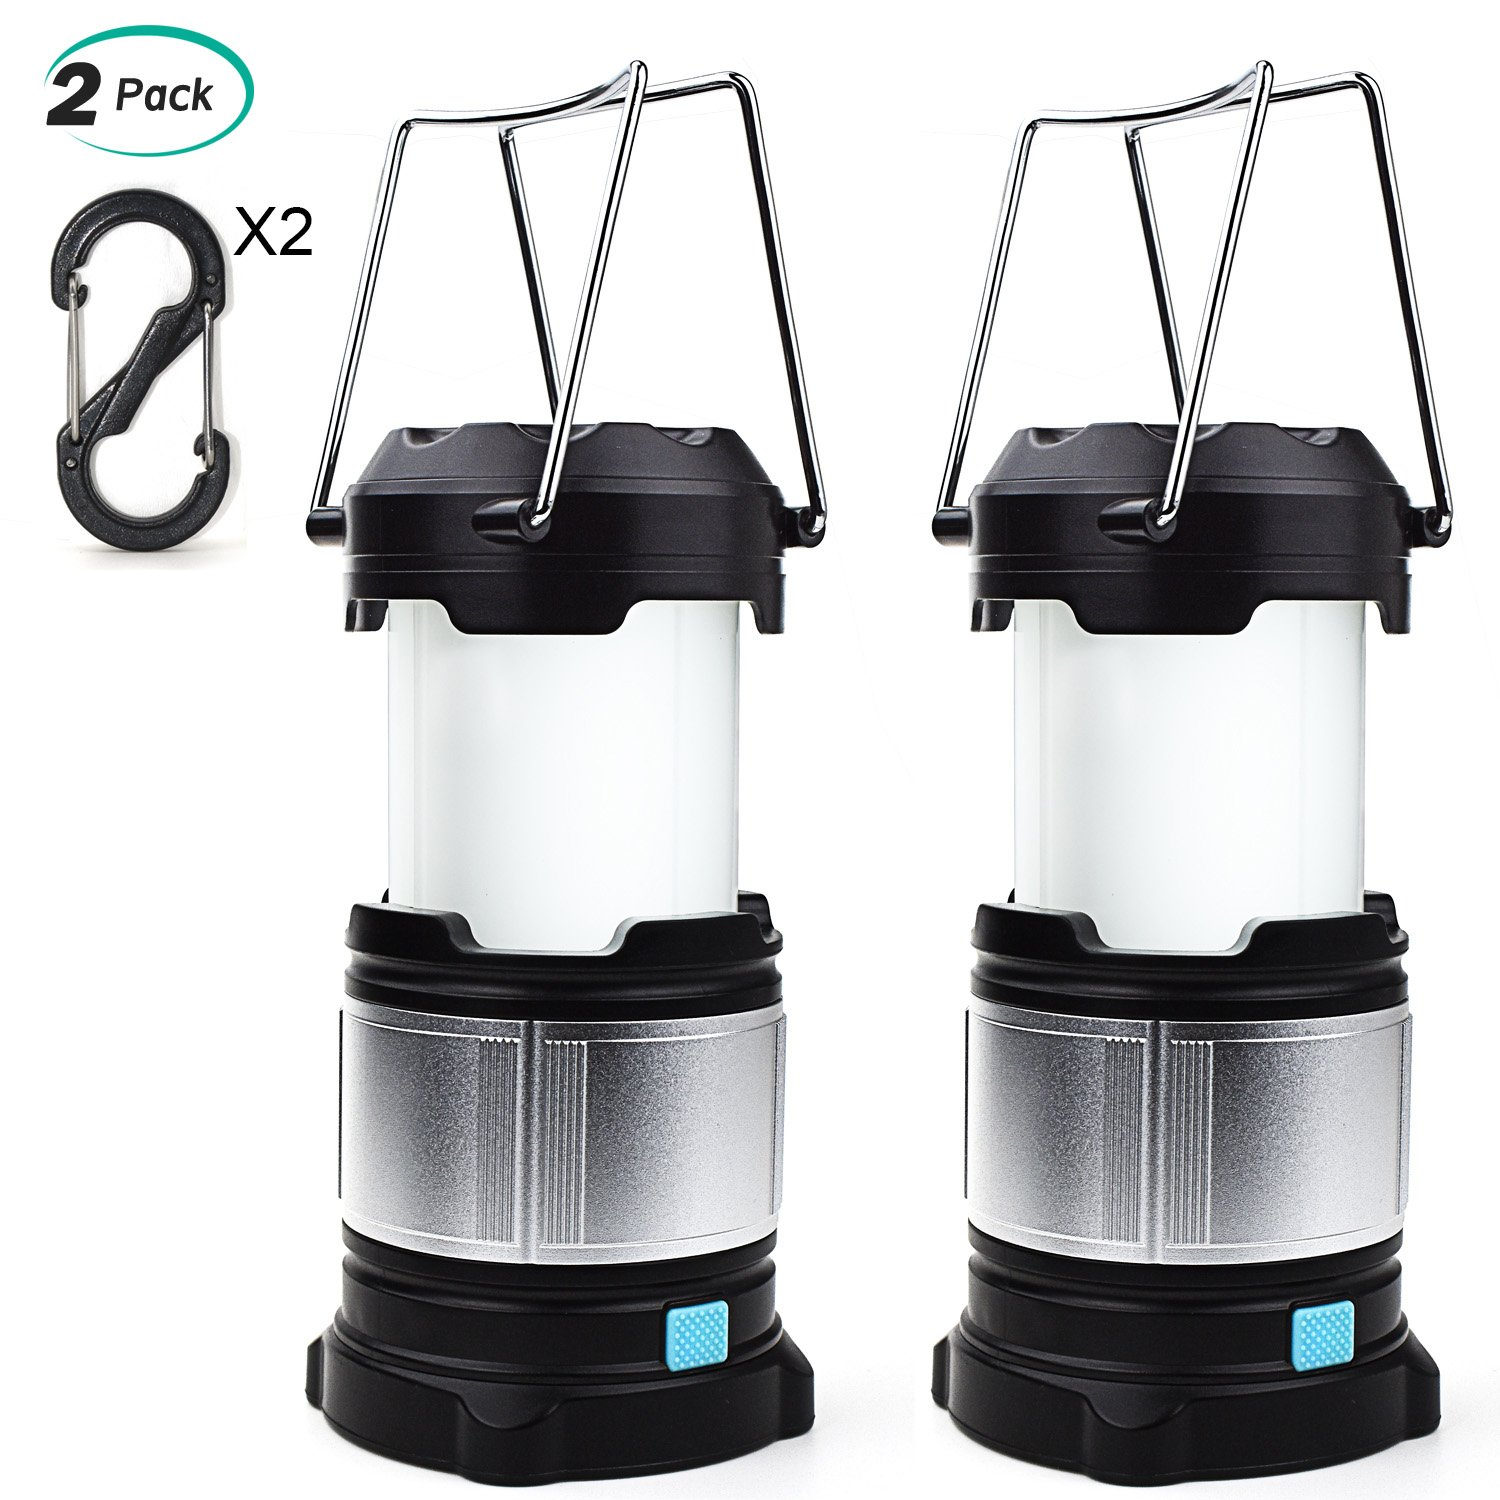 Alcoon 2 Packs Rechargeable LED Camping Lantern Light Lamp with 5600mAh Power Bank, Portable Collapsible Waterproof Outdoor Light with 18650 Li-ion Batteries for Camping Traveling Tent, Emergency